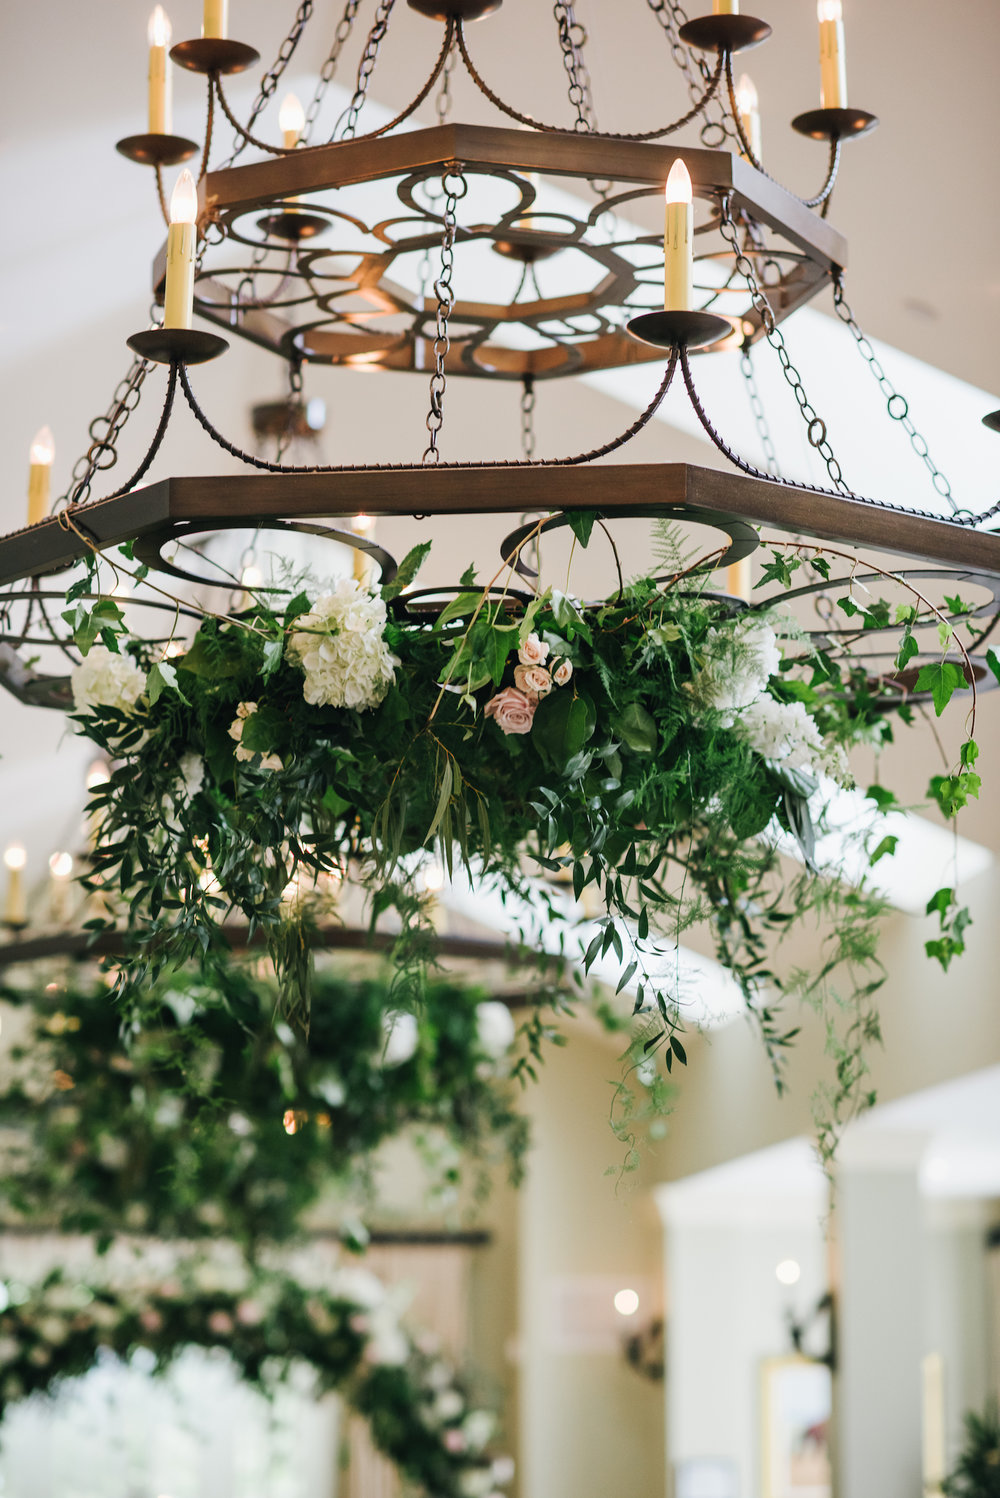 Hanging chandeliers and a circular arch at Salamander Resort and Spa. Photography by Chi Chi Ari.